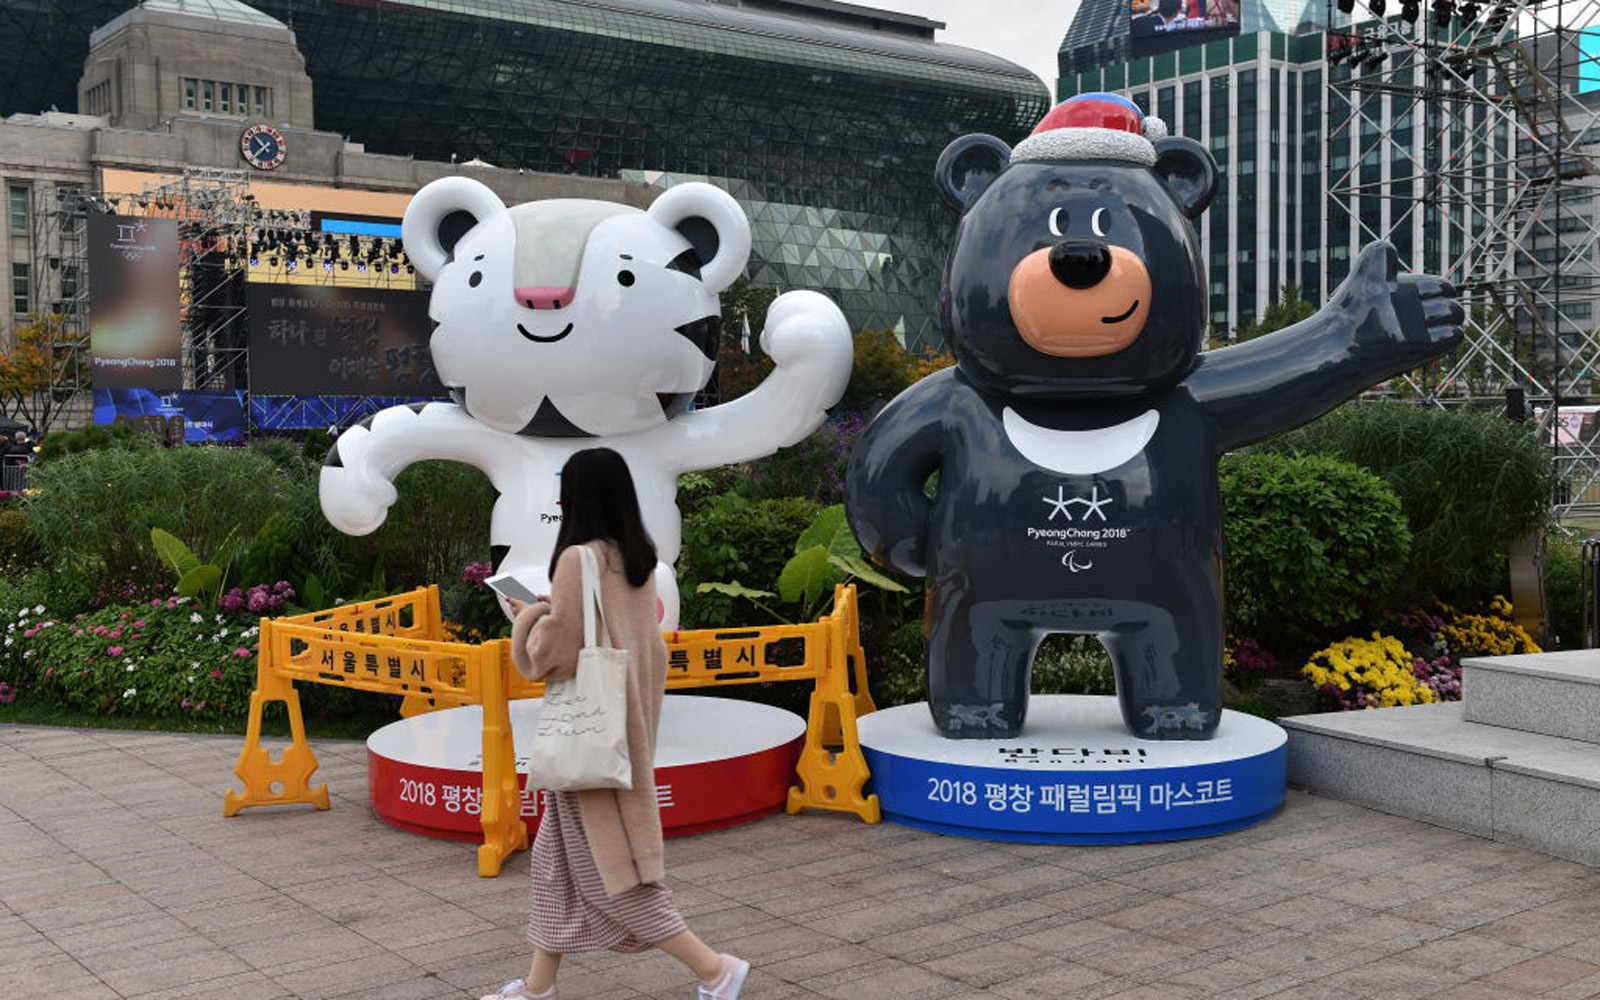 How to Get Tickets to the 2018 Winter Olympics in Pyeongchang